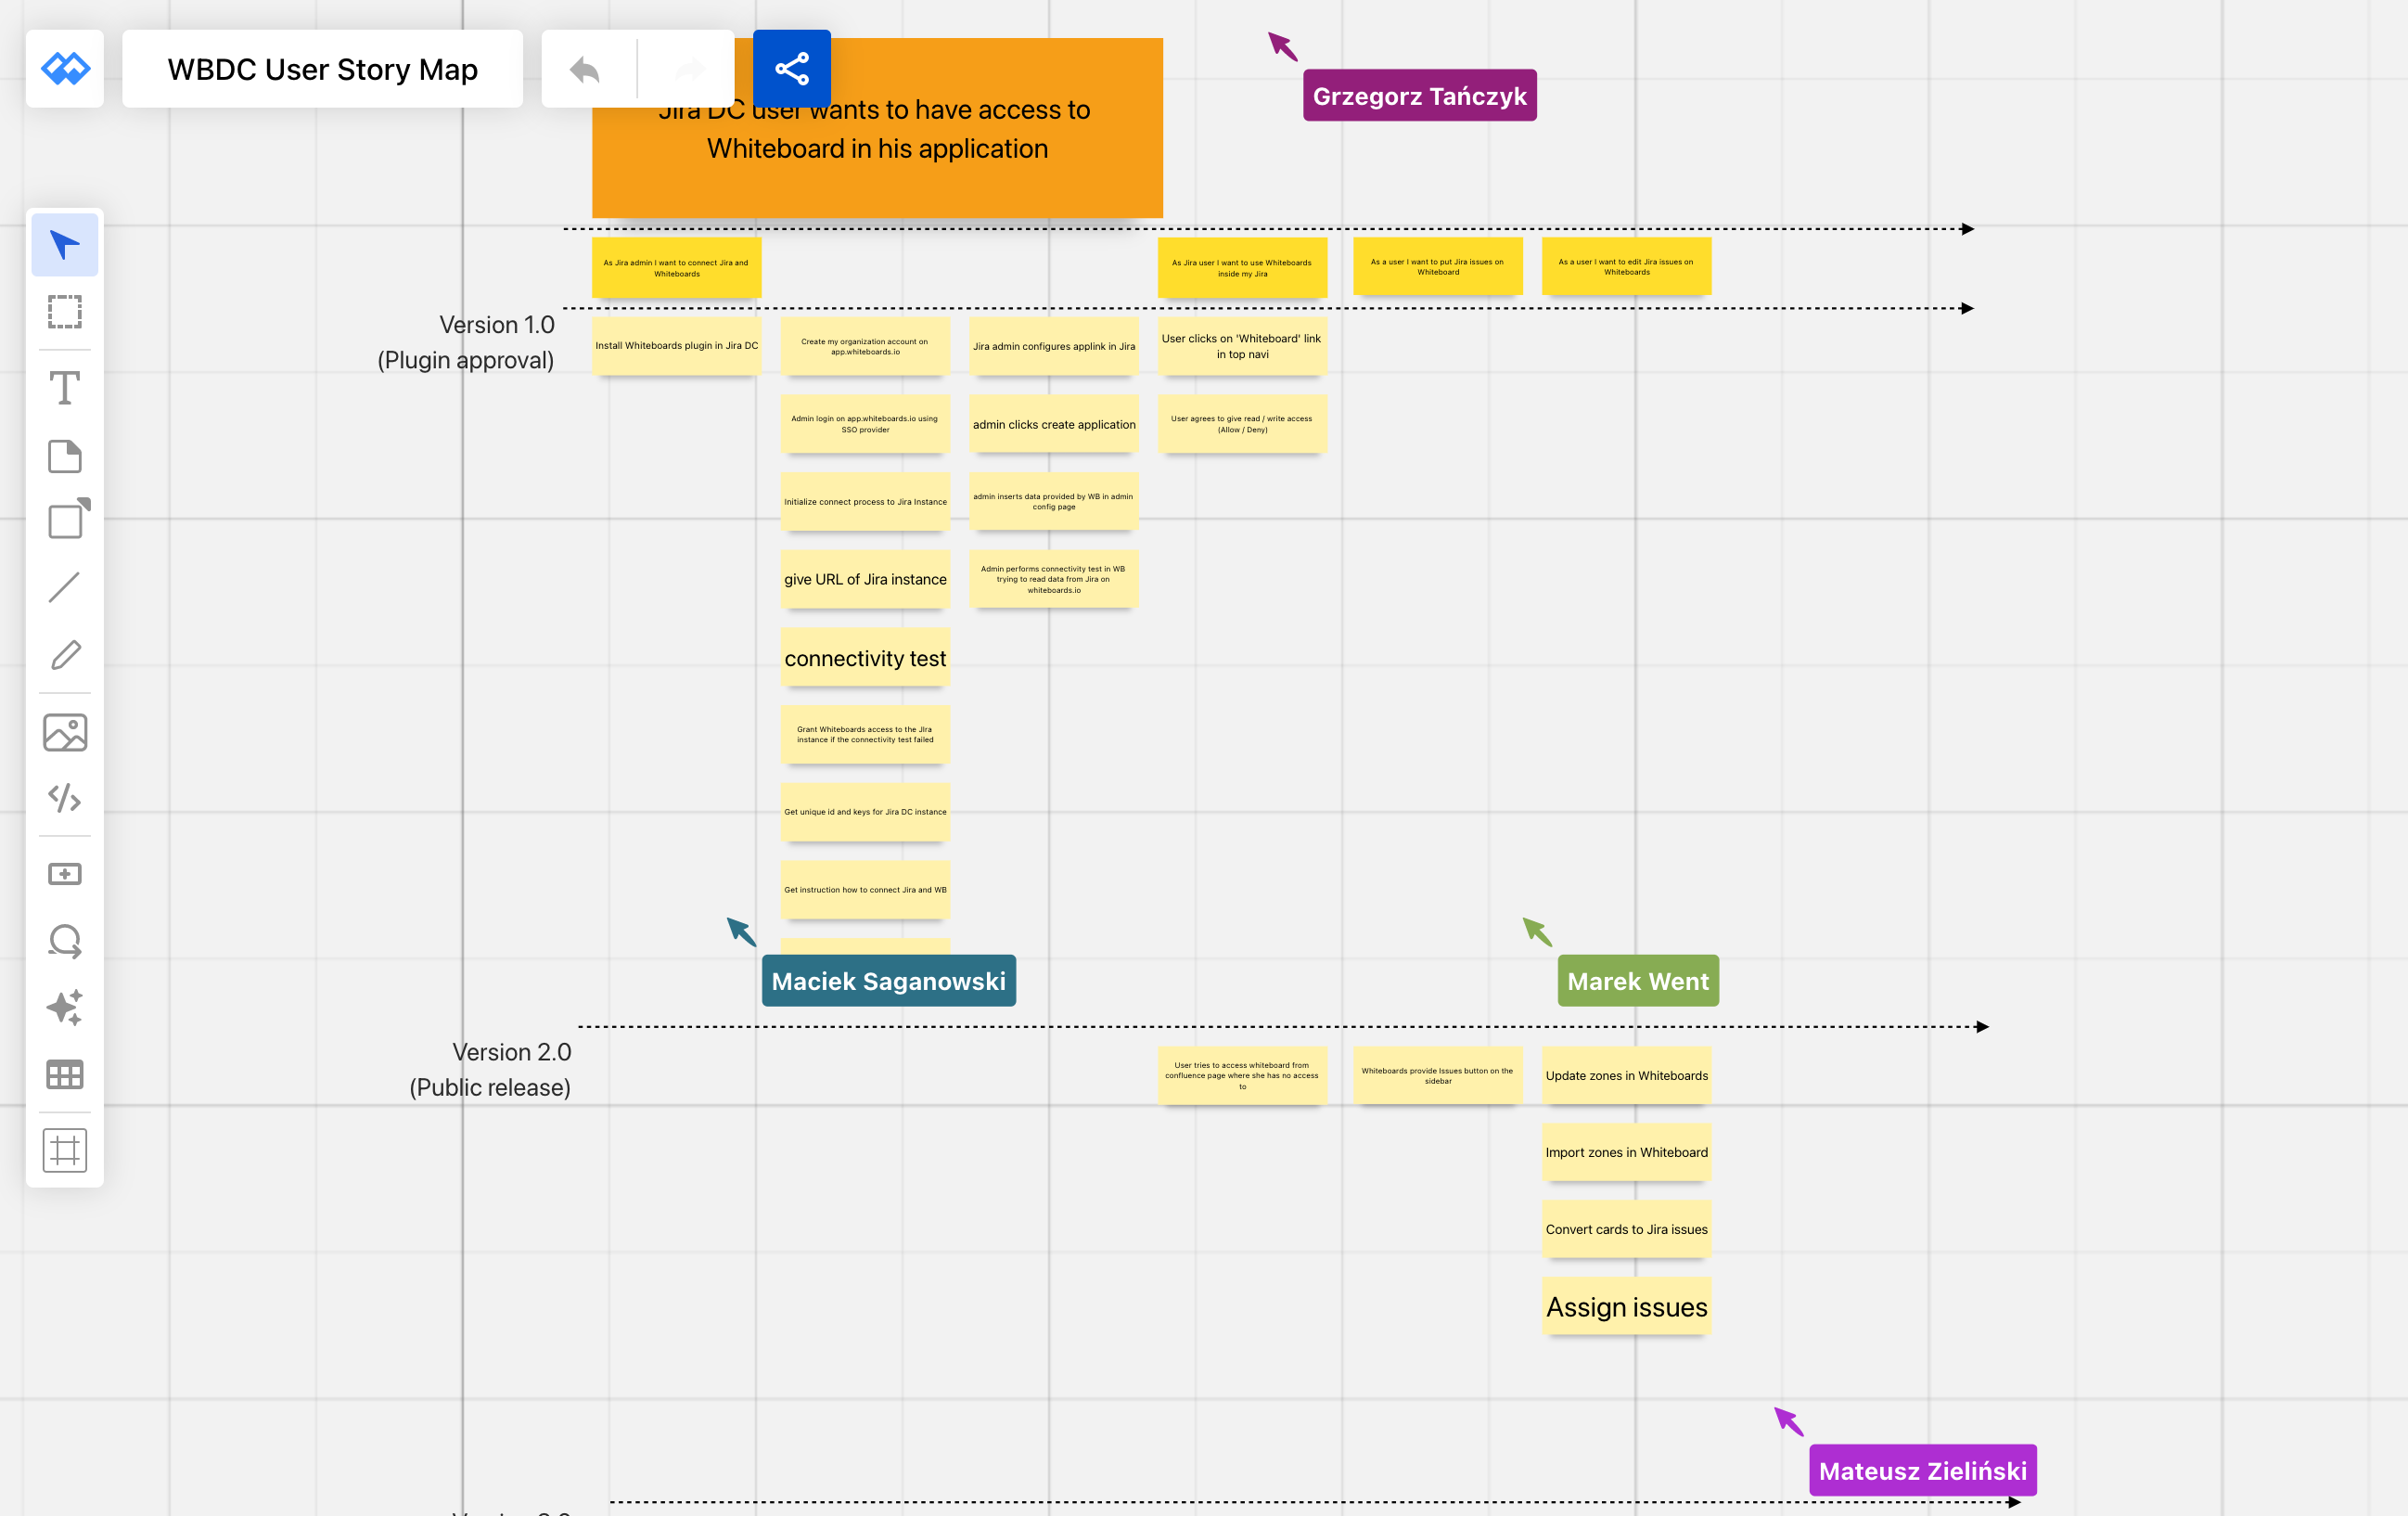 Adding activities to user story map